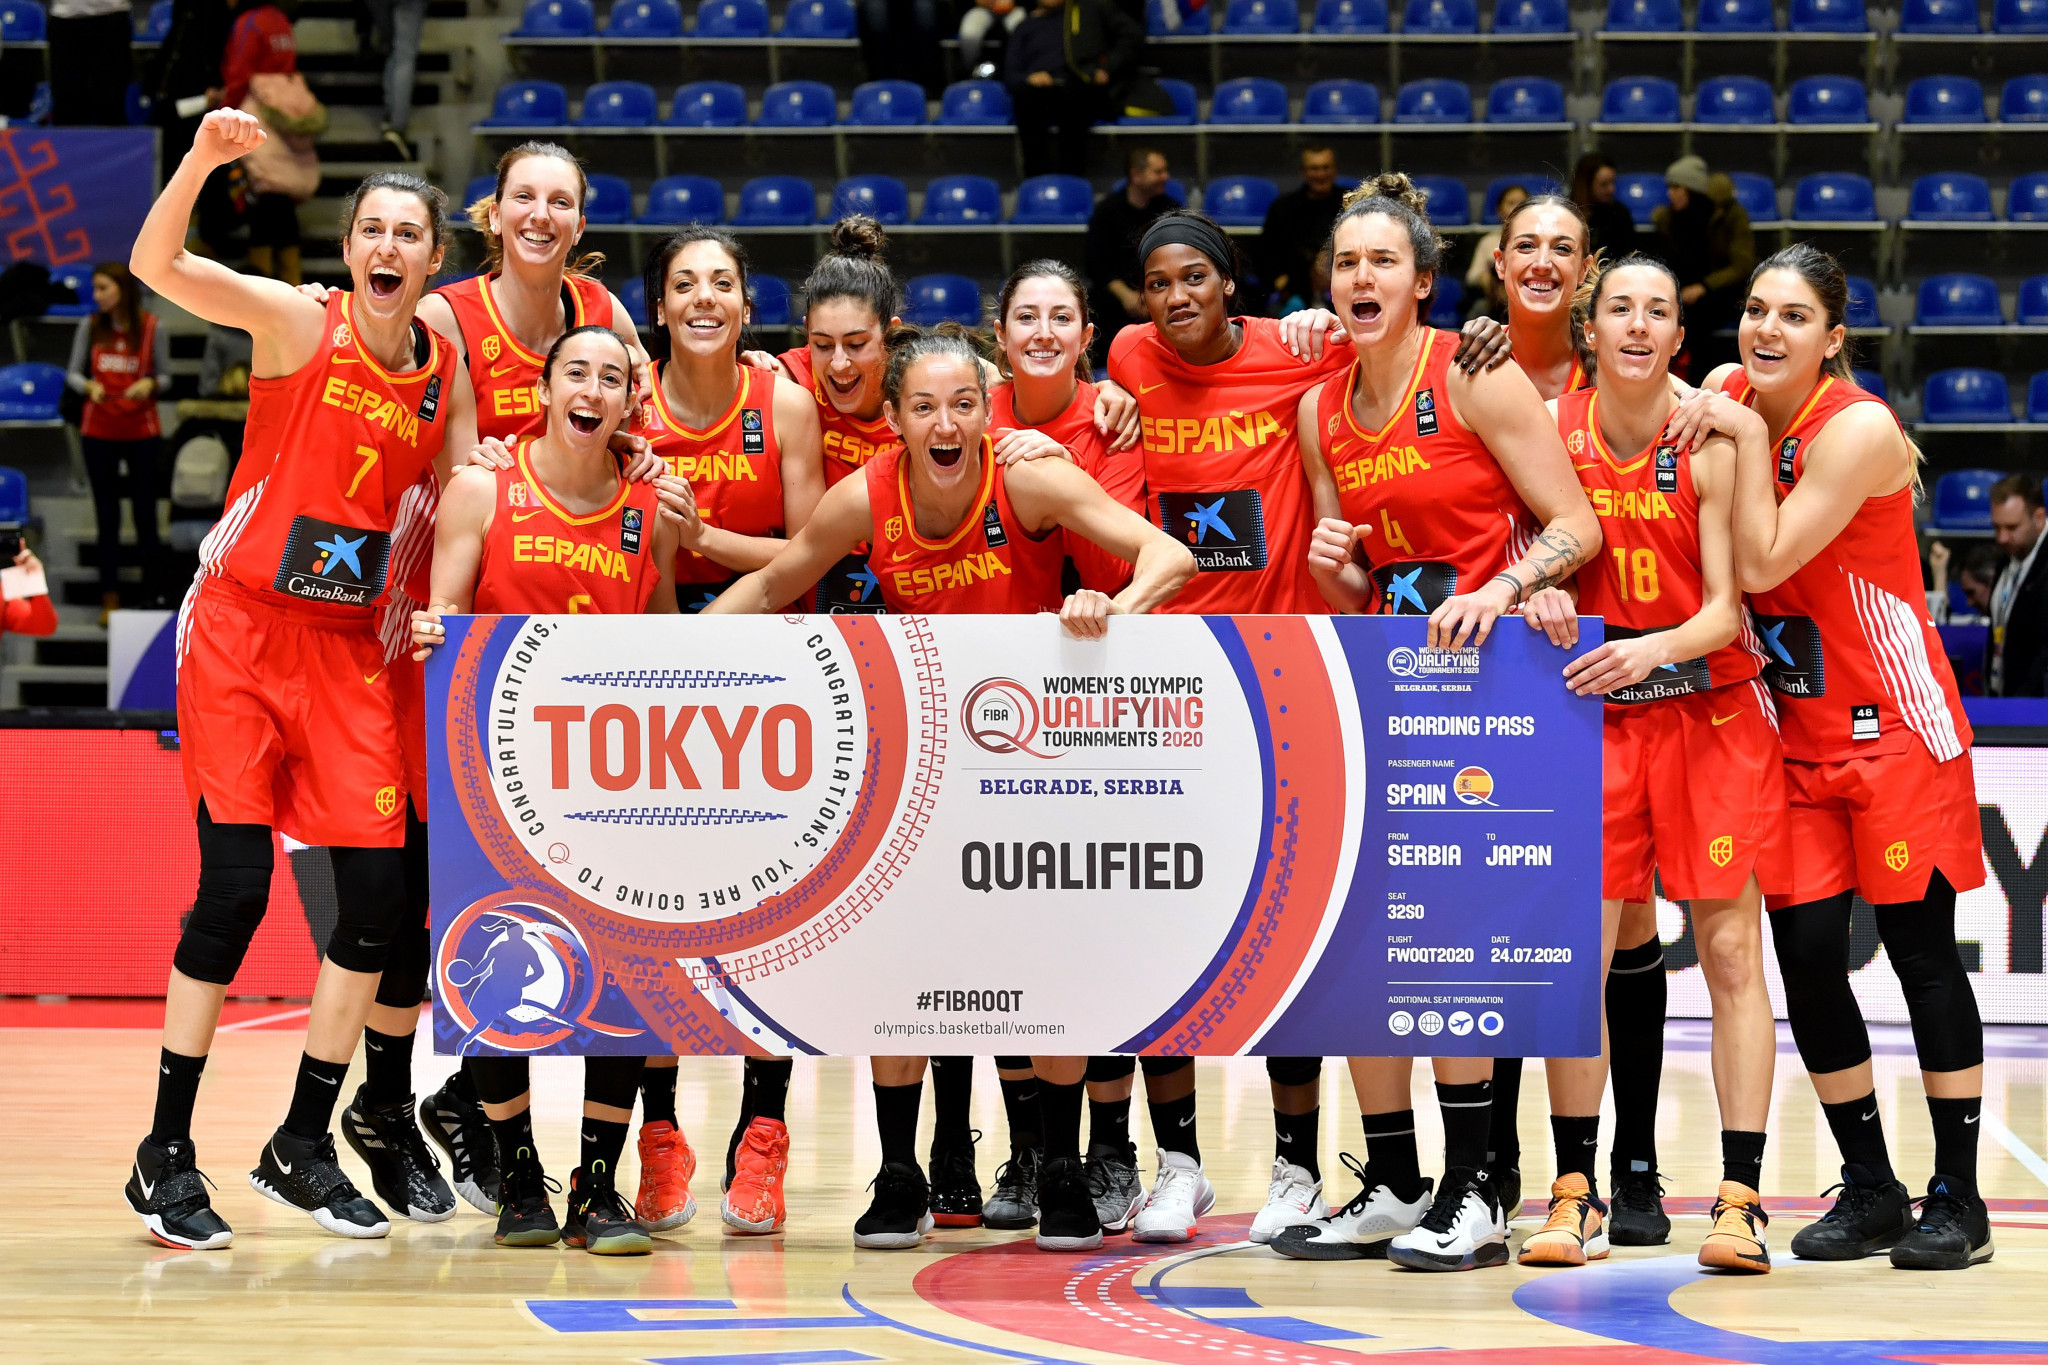 Spain among qualifiers to Tokyo 2020 women's basketball tournament